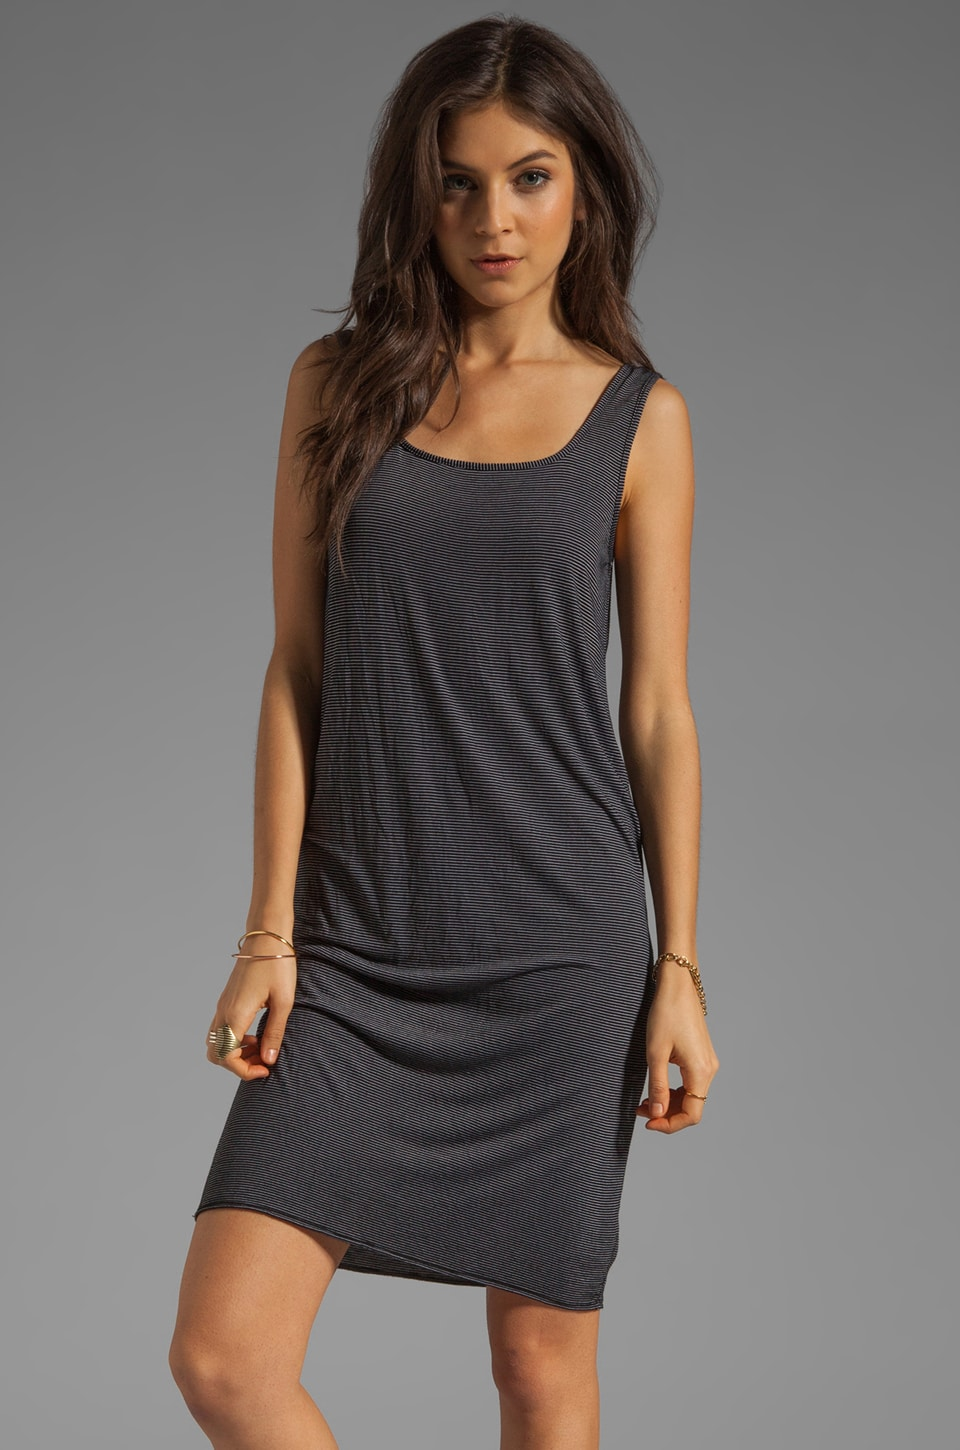 fLuXuS Square-Neck Tank Dress in Black